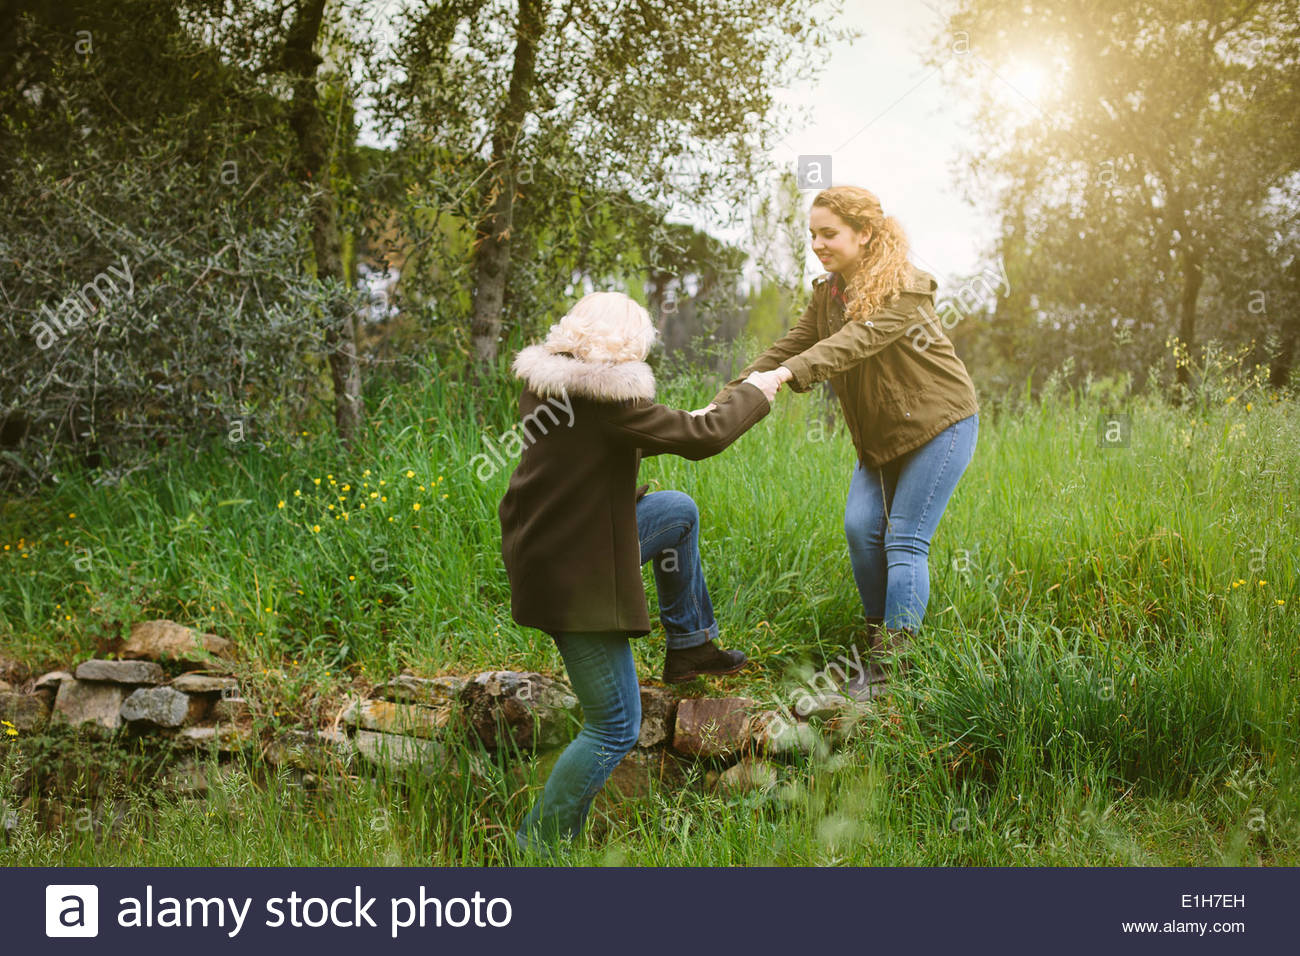 Teenage girl helping her mother over a stone wall - Stock Image